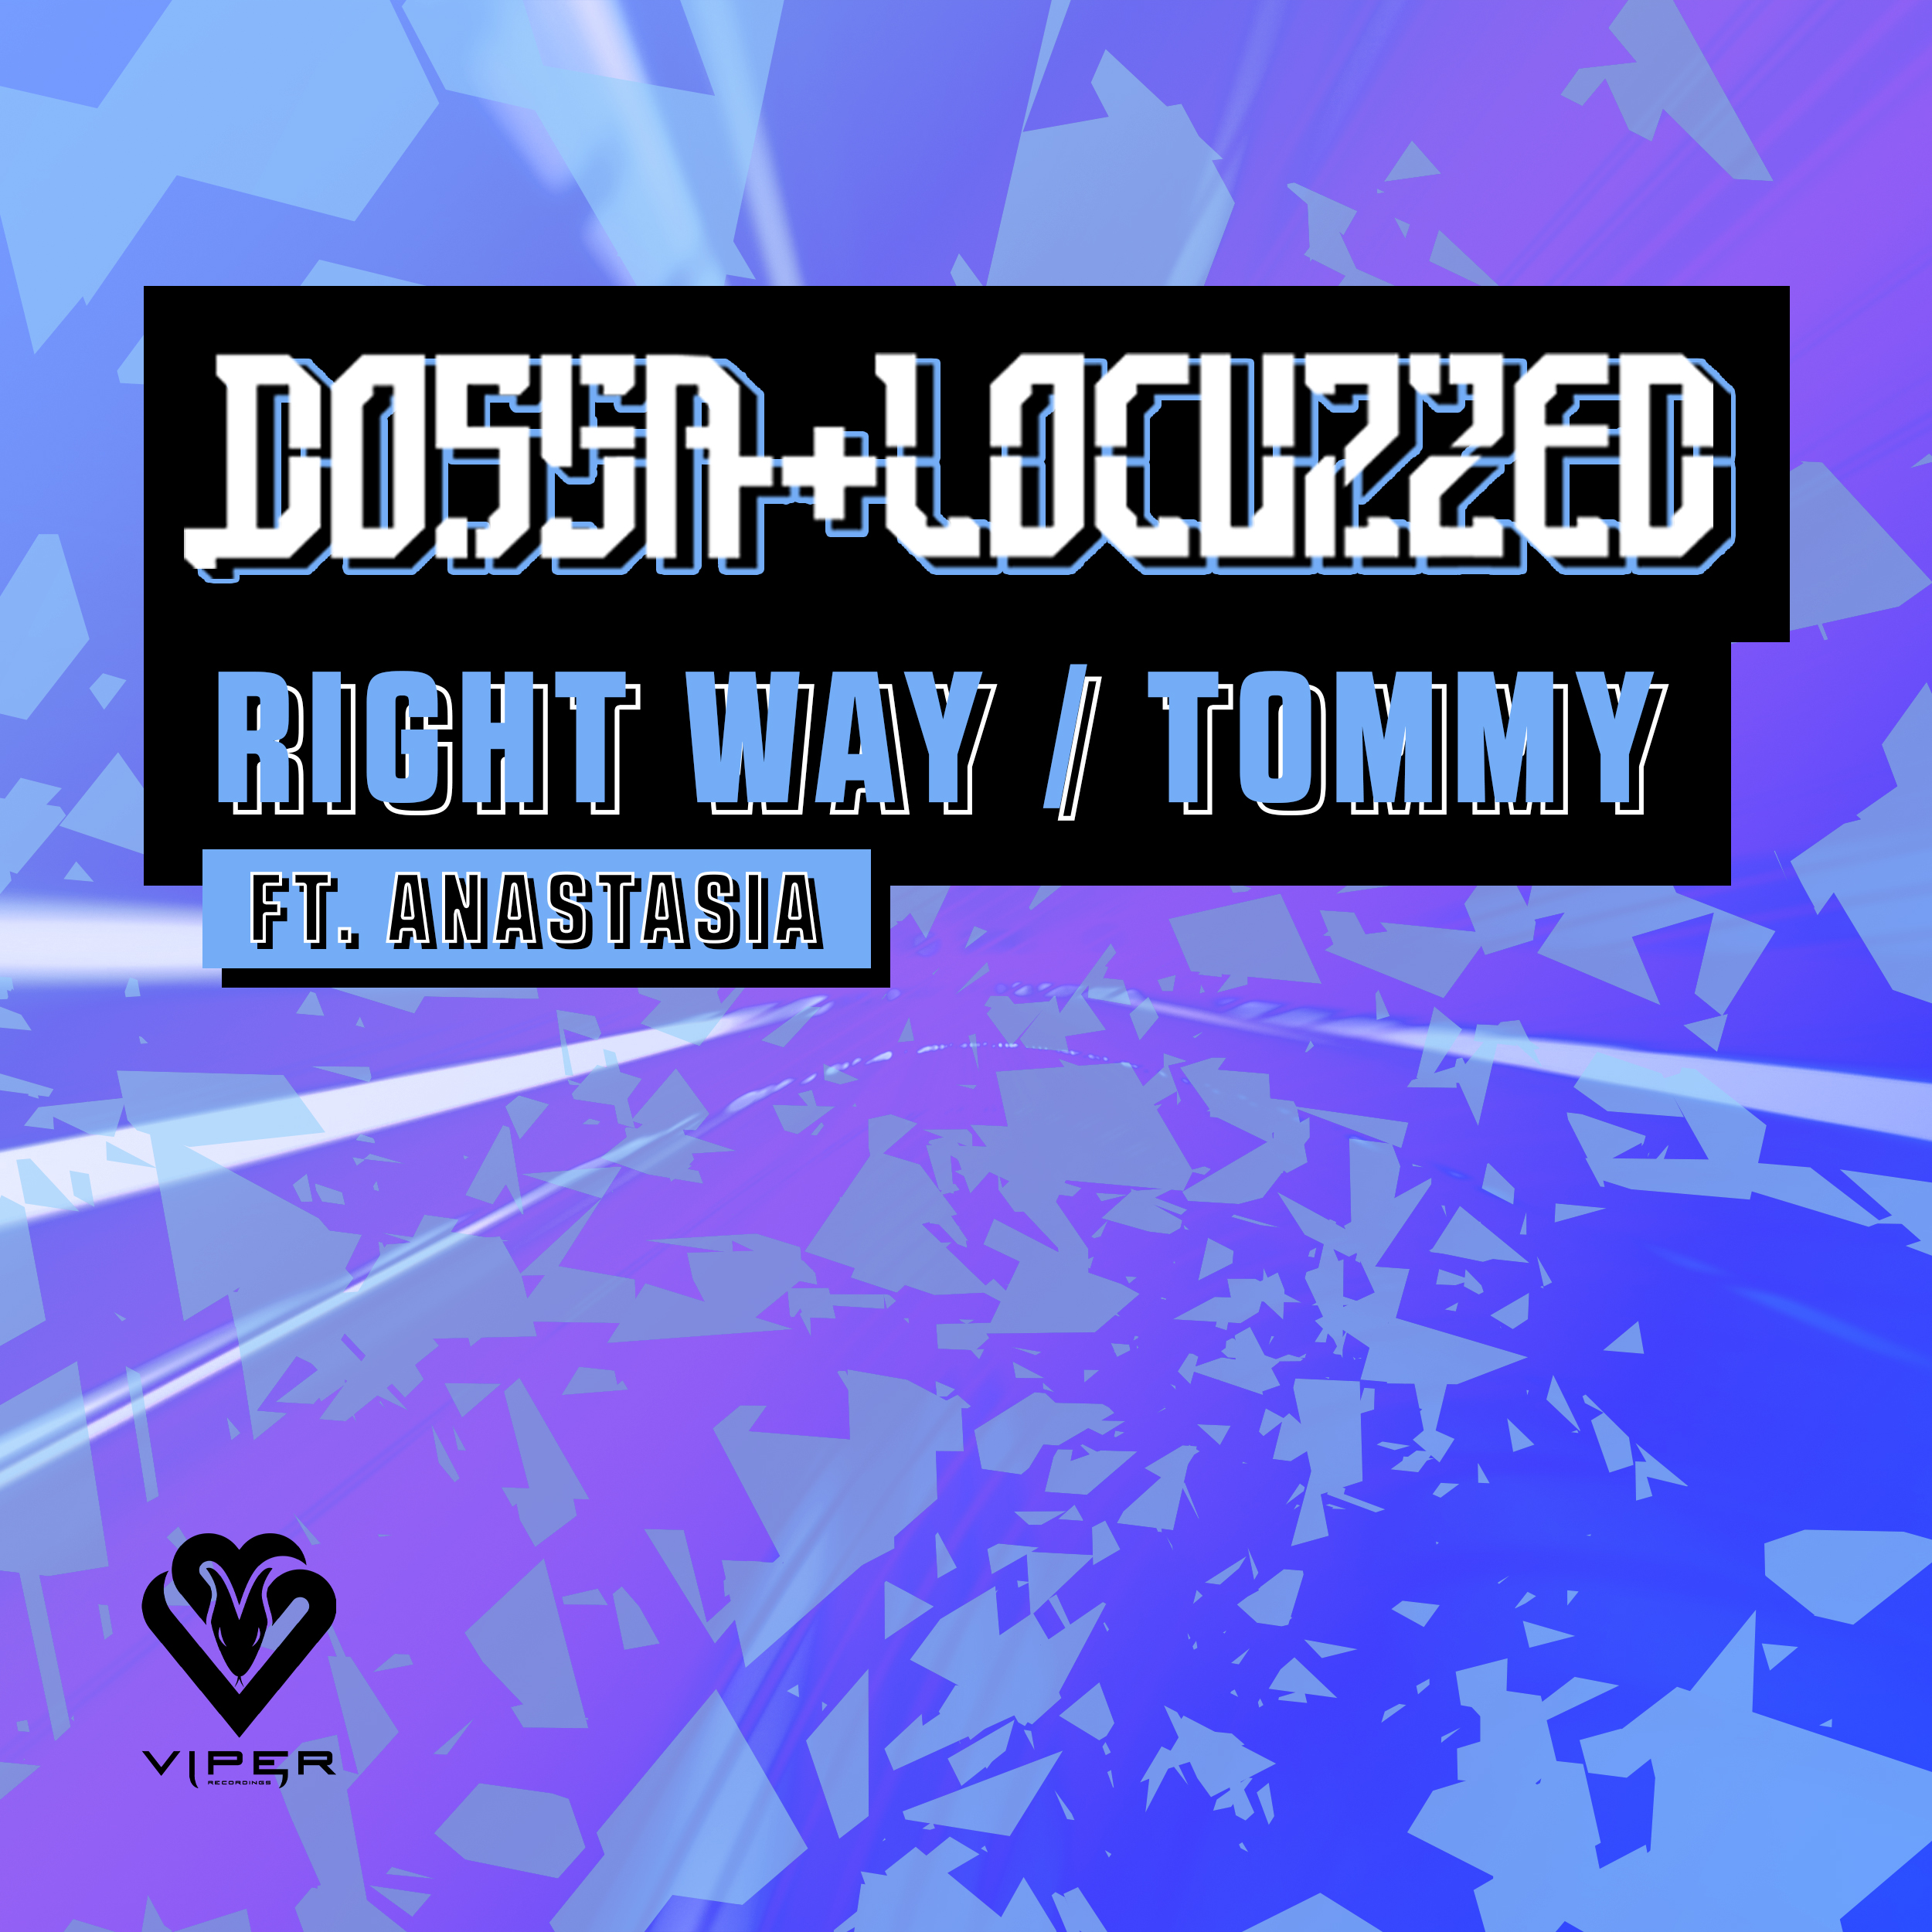 Dossa & Locuzzed - Right Way / Tommy [VPR222]